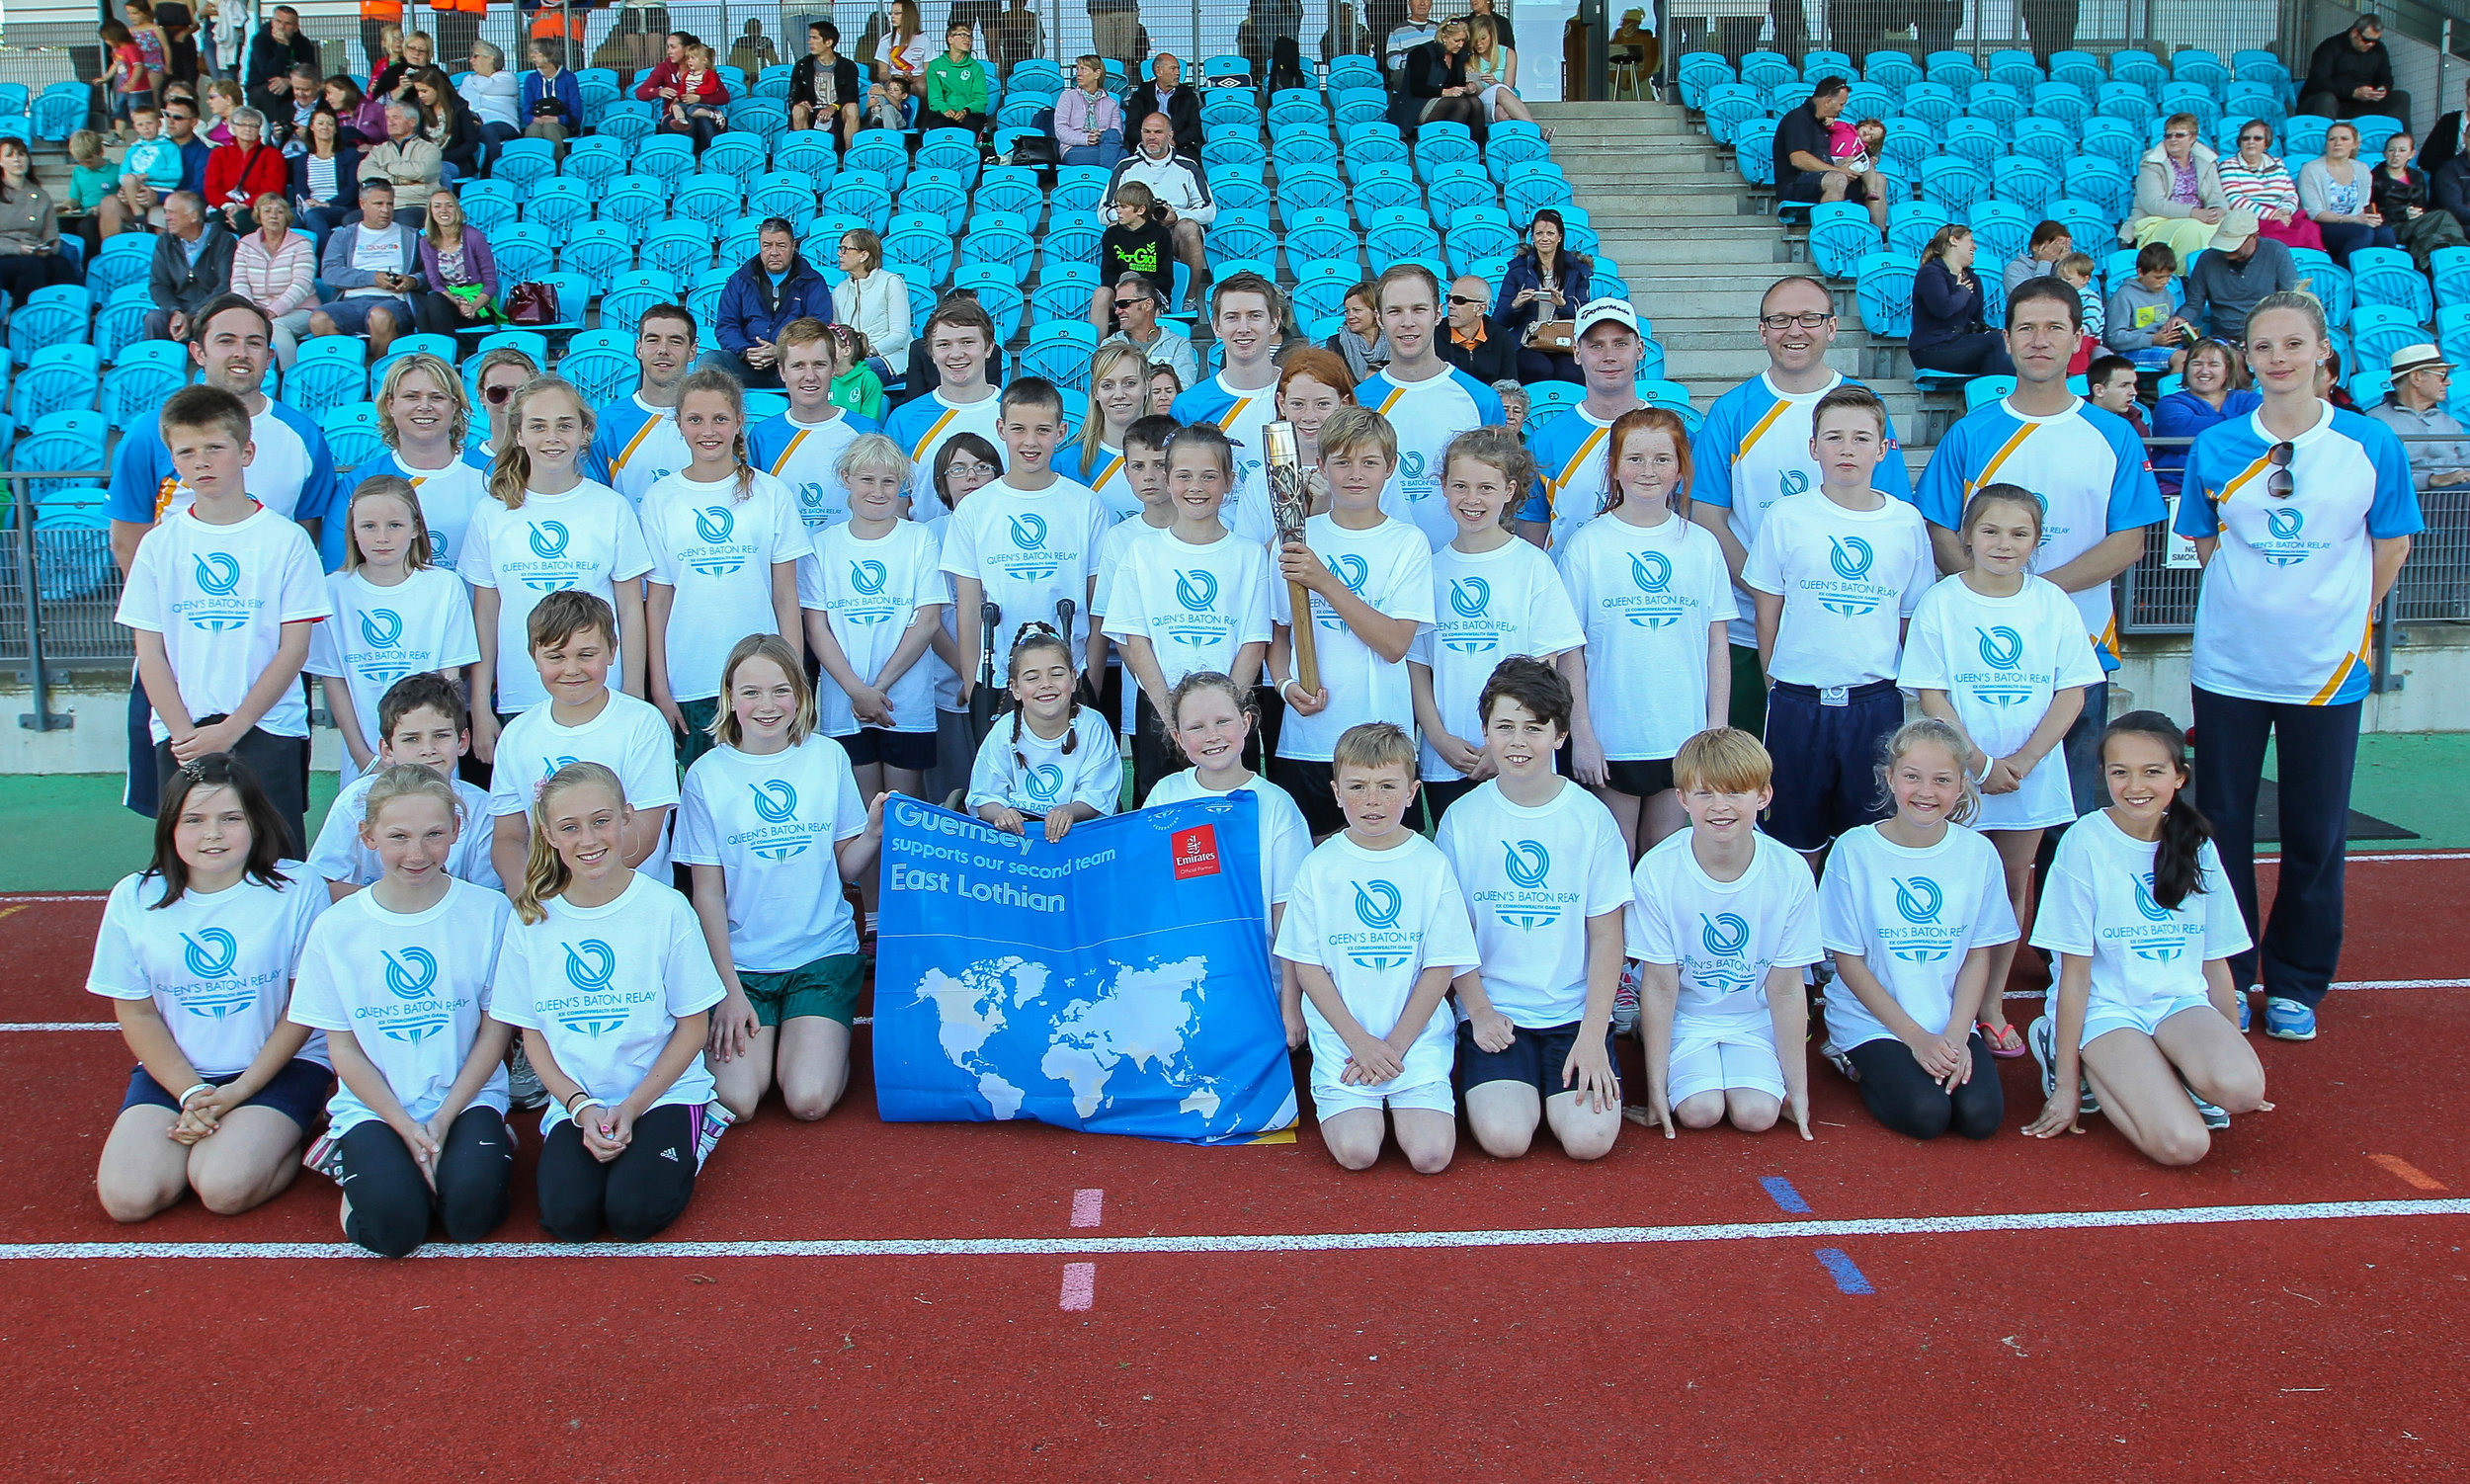 Experience the Guernsey Sports Commission's excellent efforts in bringing to Guernsey the Queen's Baton Relay. By following the photos you can experience the days the Queen's Baton spent in Guernsey…